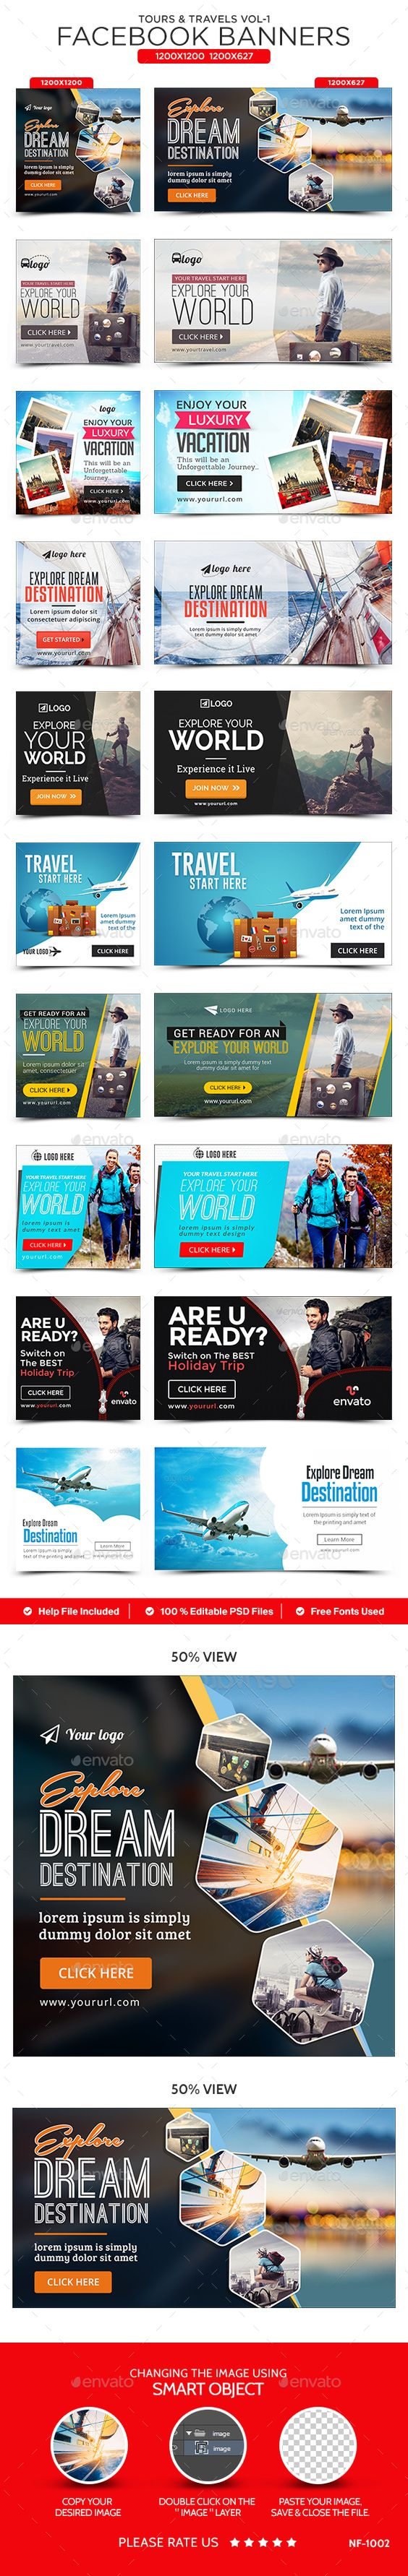 Tours & Travels Facebook Banners - 10 Designs Template PSD #ads #promote Download: http://graphicriver.net/item/tours-travels-facebook-banners-10-designs/14487621?ref=ksioks